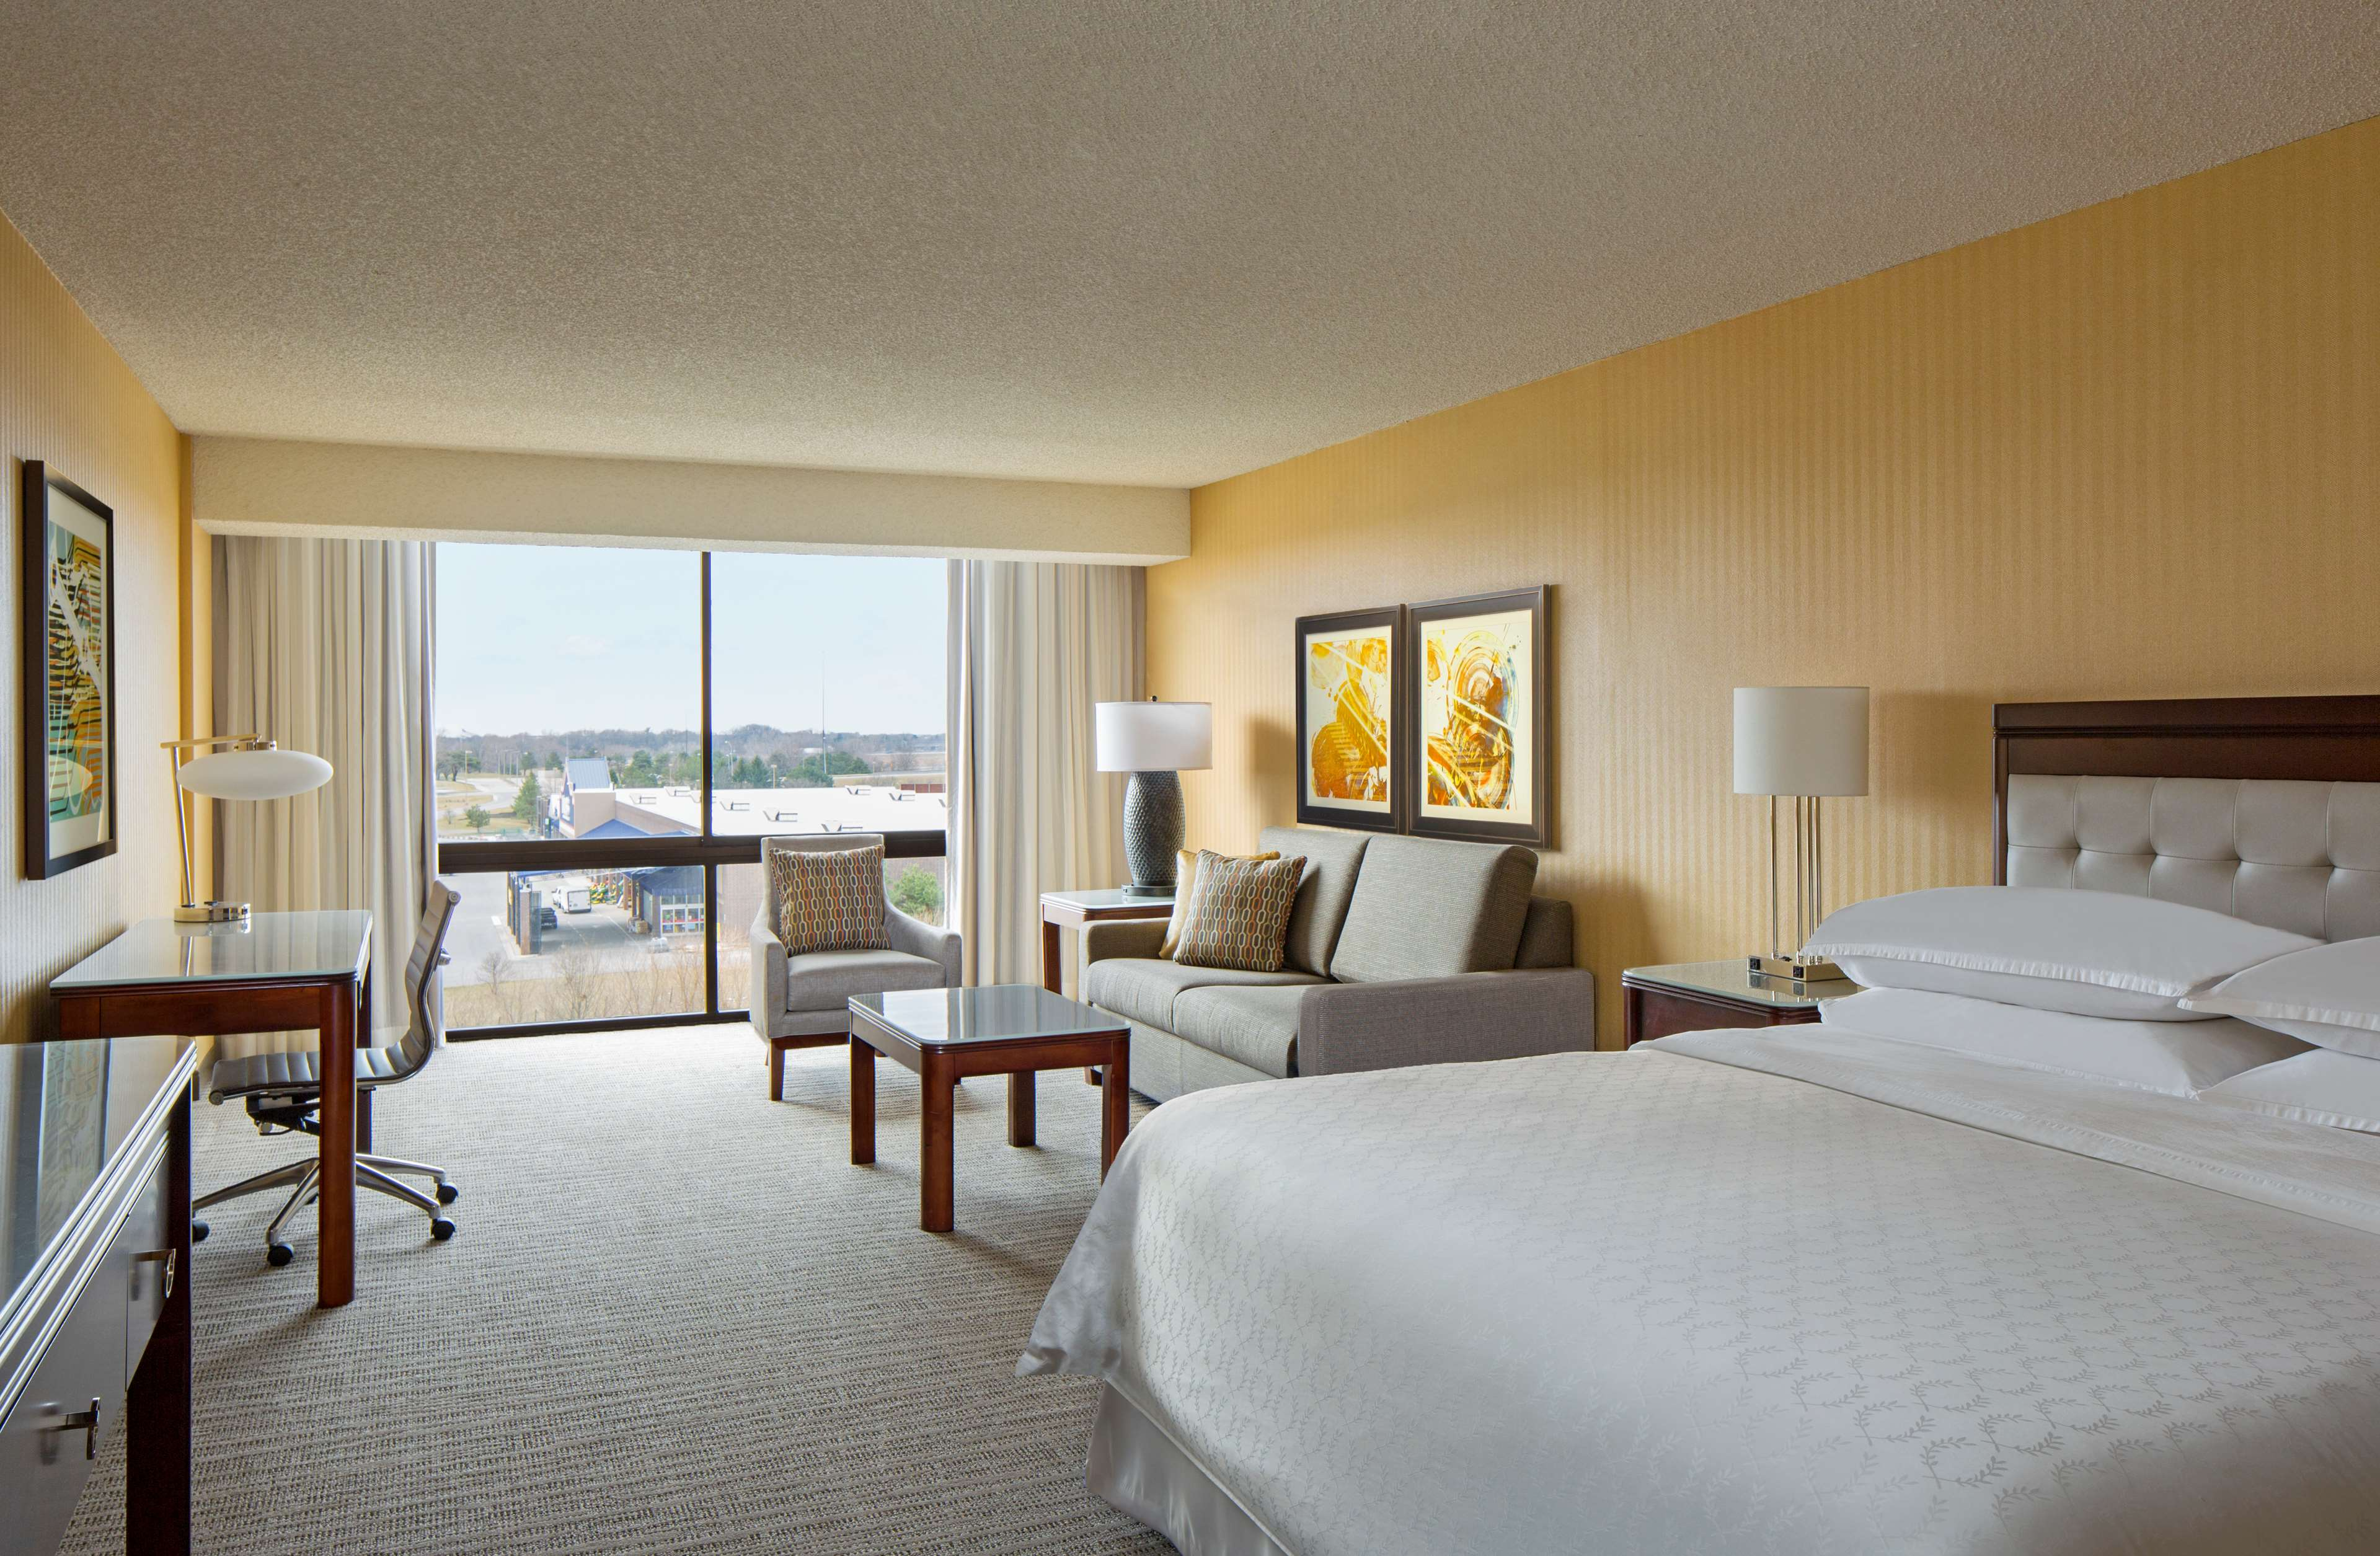 Sheraton West Des Moines Hotel in West Des Moines, IA : Whitepages